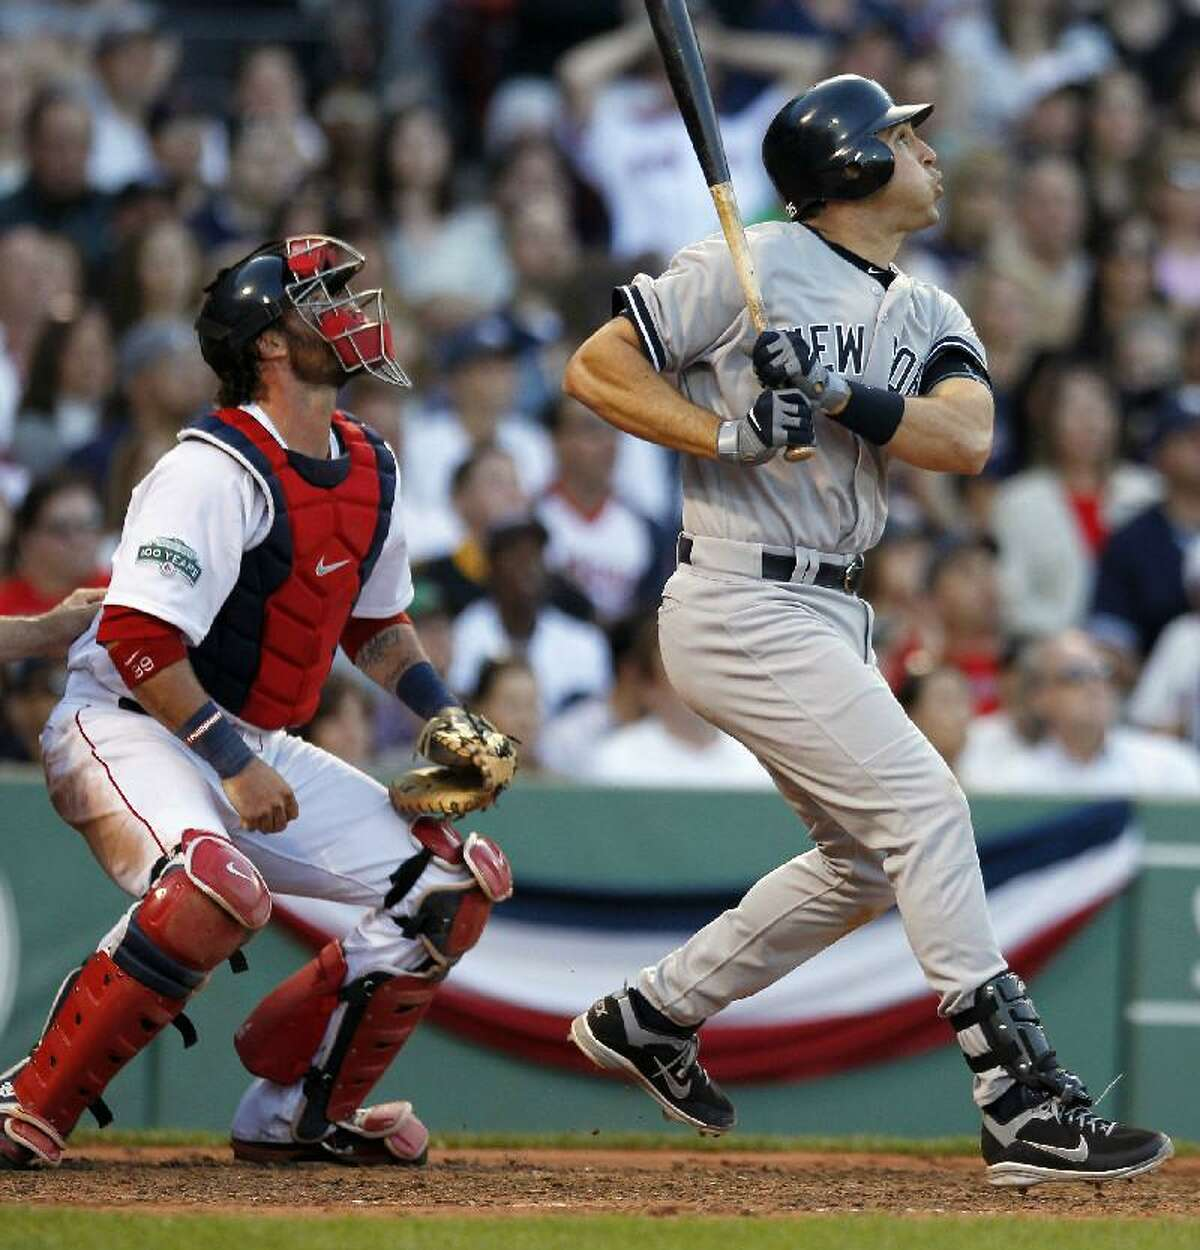 ASSOCIATED PRESS New York Yankees first baseman Mark Teixeira, right, watches his three-run home run in front of Boston Red Sox catcher Jarrod Saltalamacchia in the seventh inning of Saturday's game at Fenway Park in Boston. The Yankees rallied from a 9-0 deficit to win 15-9.